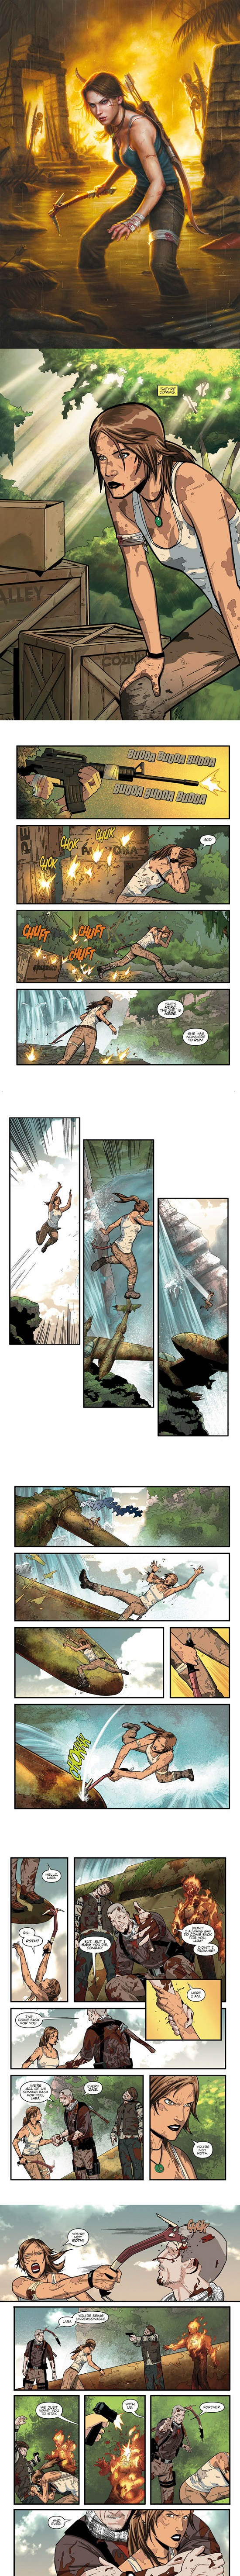 tomb-raider-1-dark-horse-comics (1)